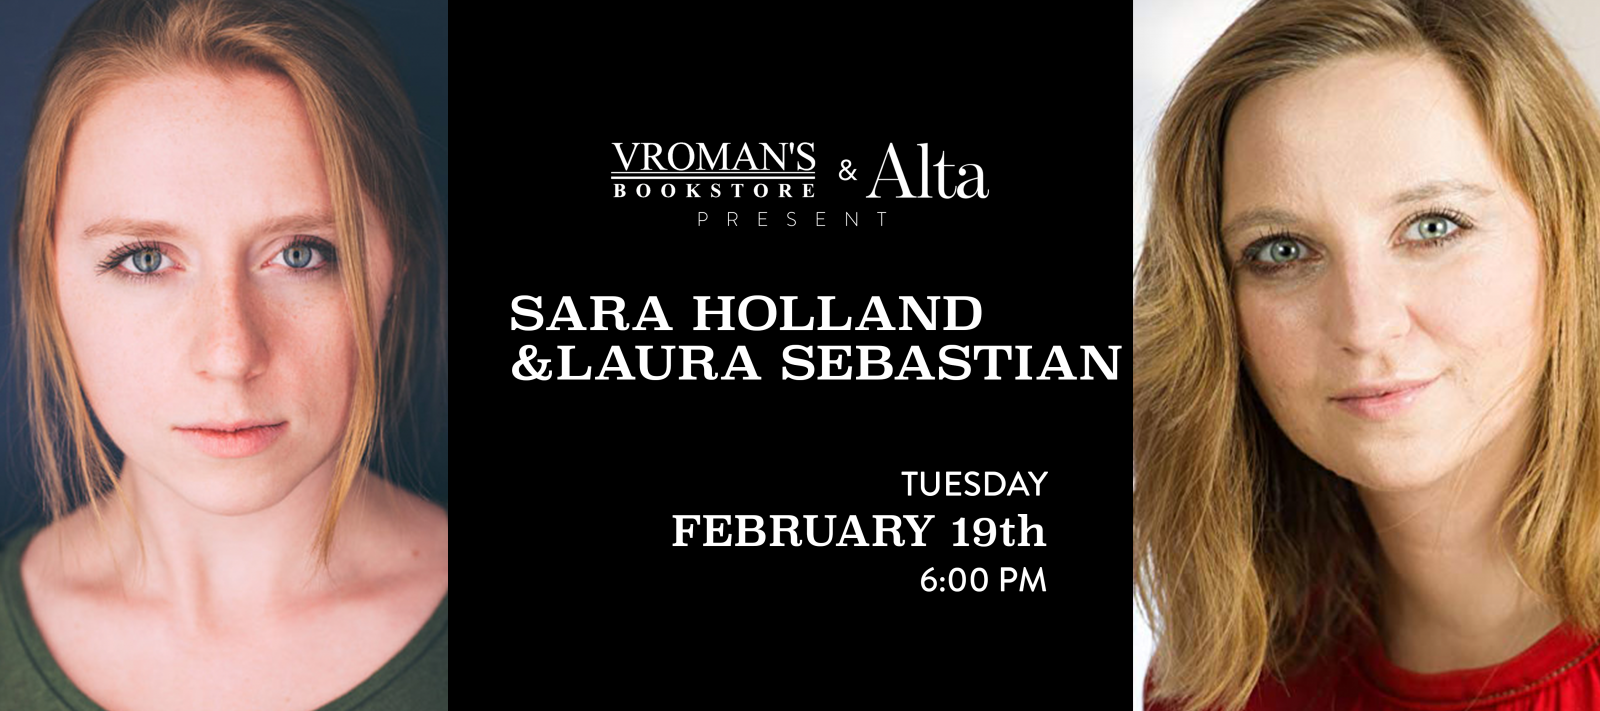 Sara Holland and Laura Sebastian, with Jessica Cluess, Tuesday February 19th at 6pm